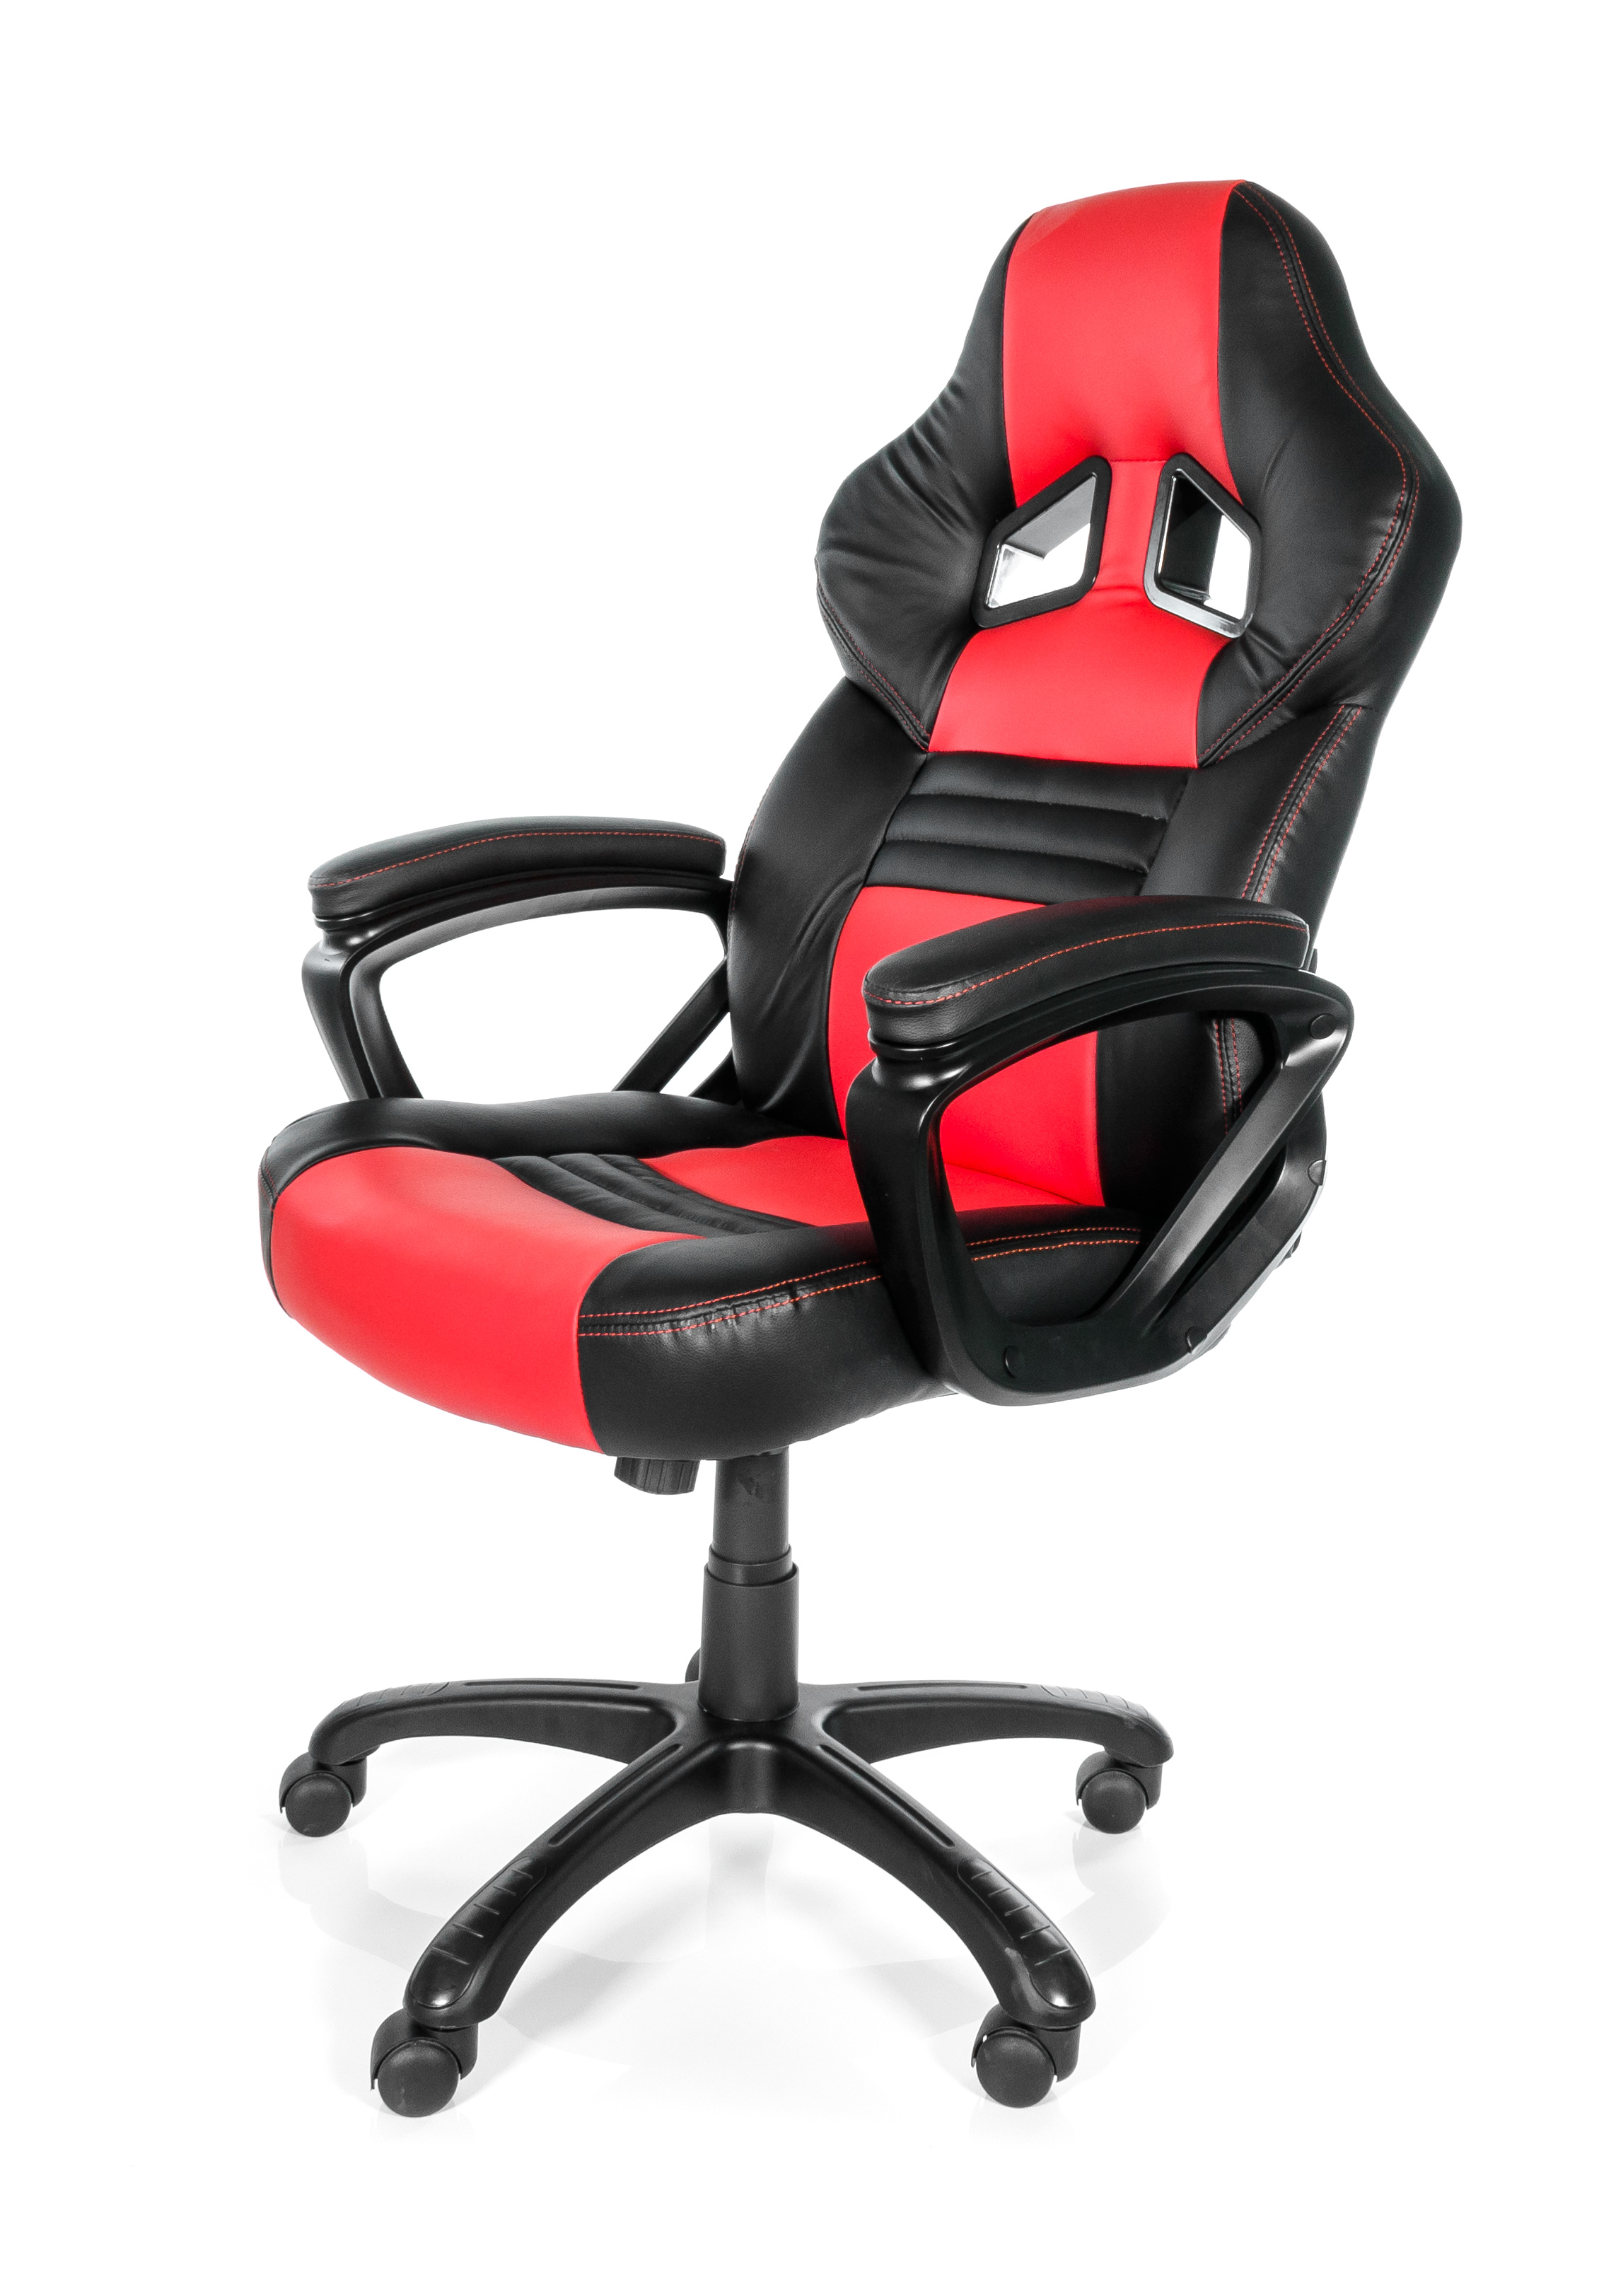 Arozzi Monza Gaming Chair Black/Red ARO-M-R